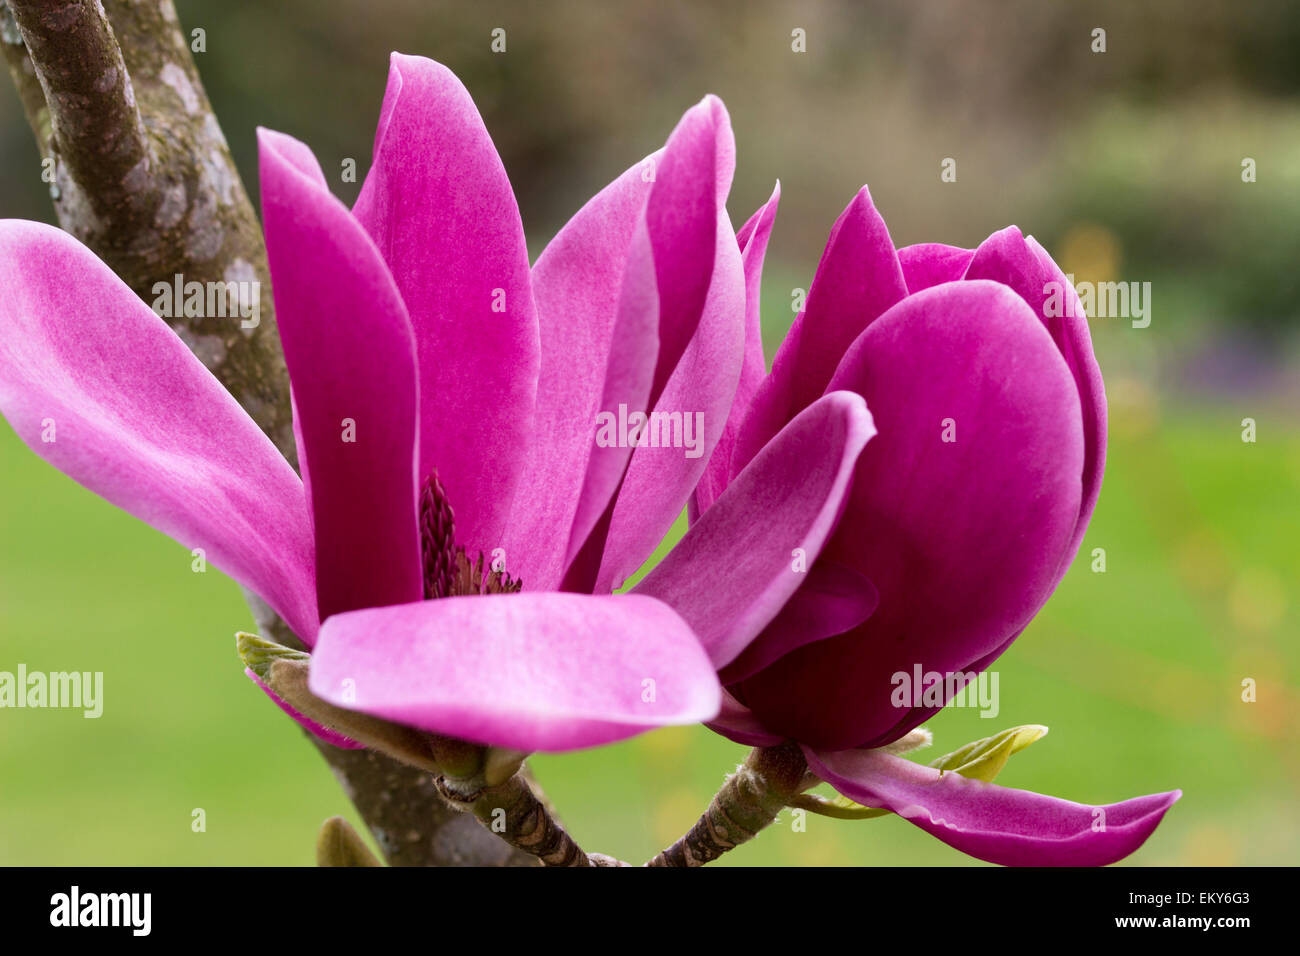 Deep Pink Flowers Of The New Zealand Bred Magnolia Shirazz Stock